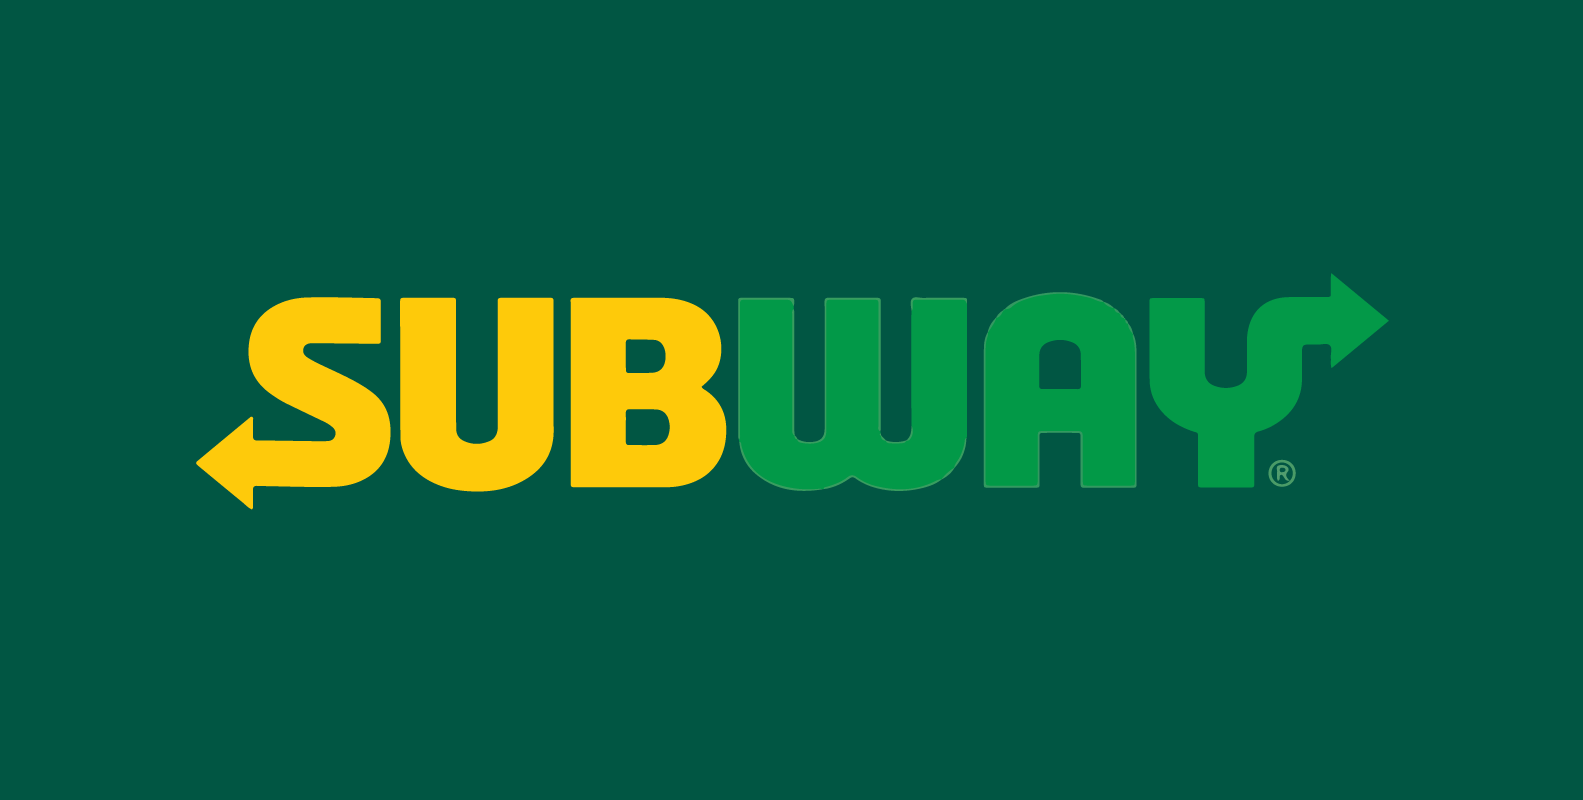 Subway (GV)